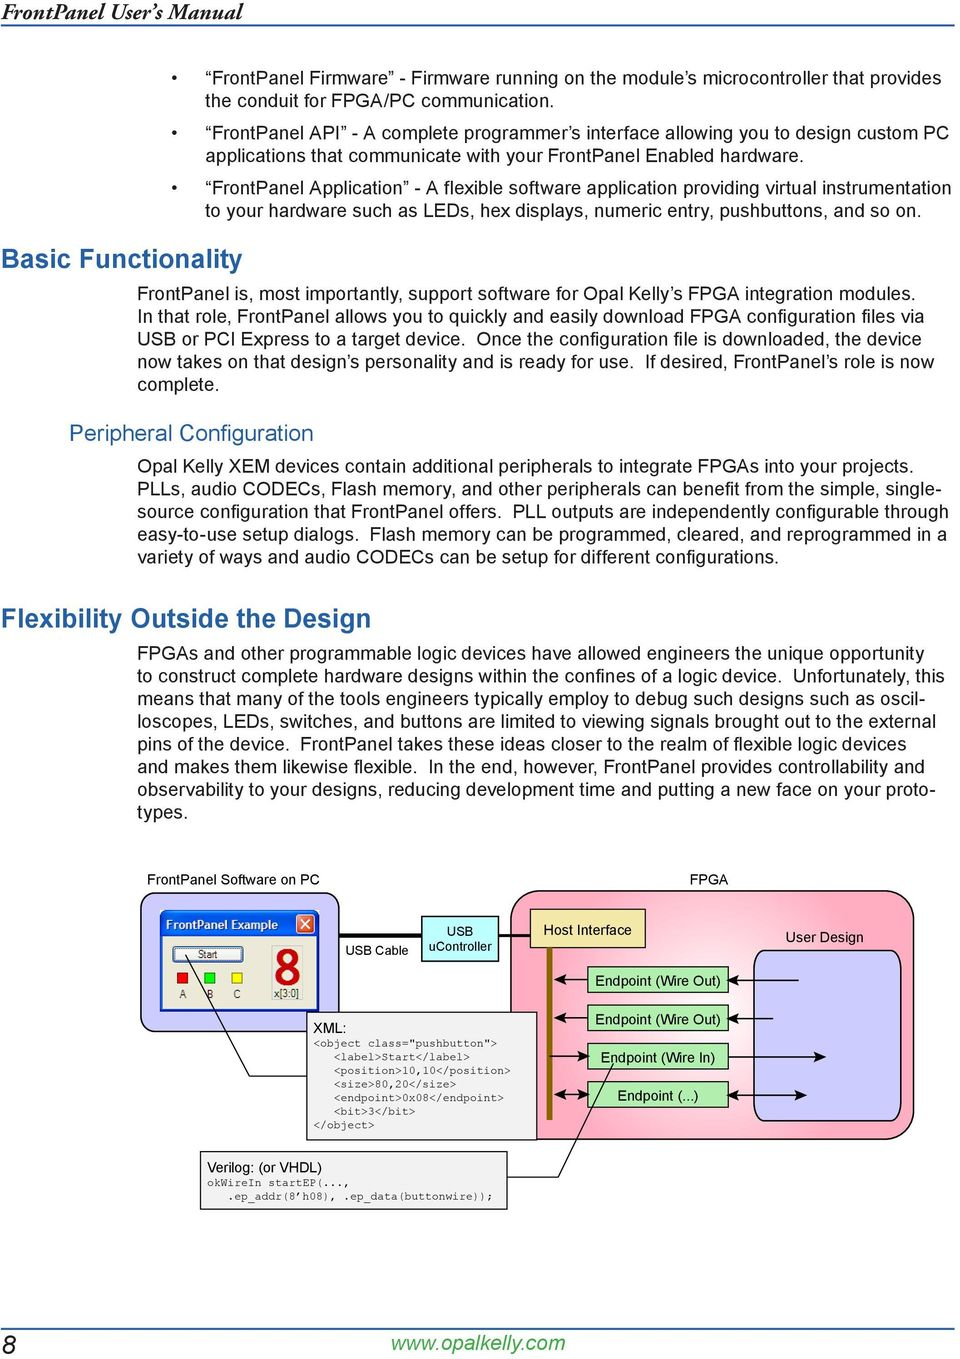 Opal Kelly Frontpanel A New Way To Control And Observe Fpga Designs Through Virtual Instruments On Your Pc Pdf Free Download